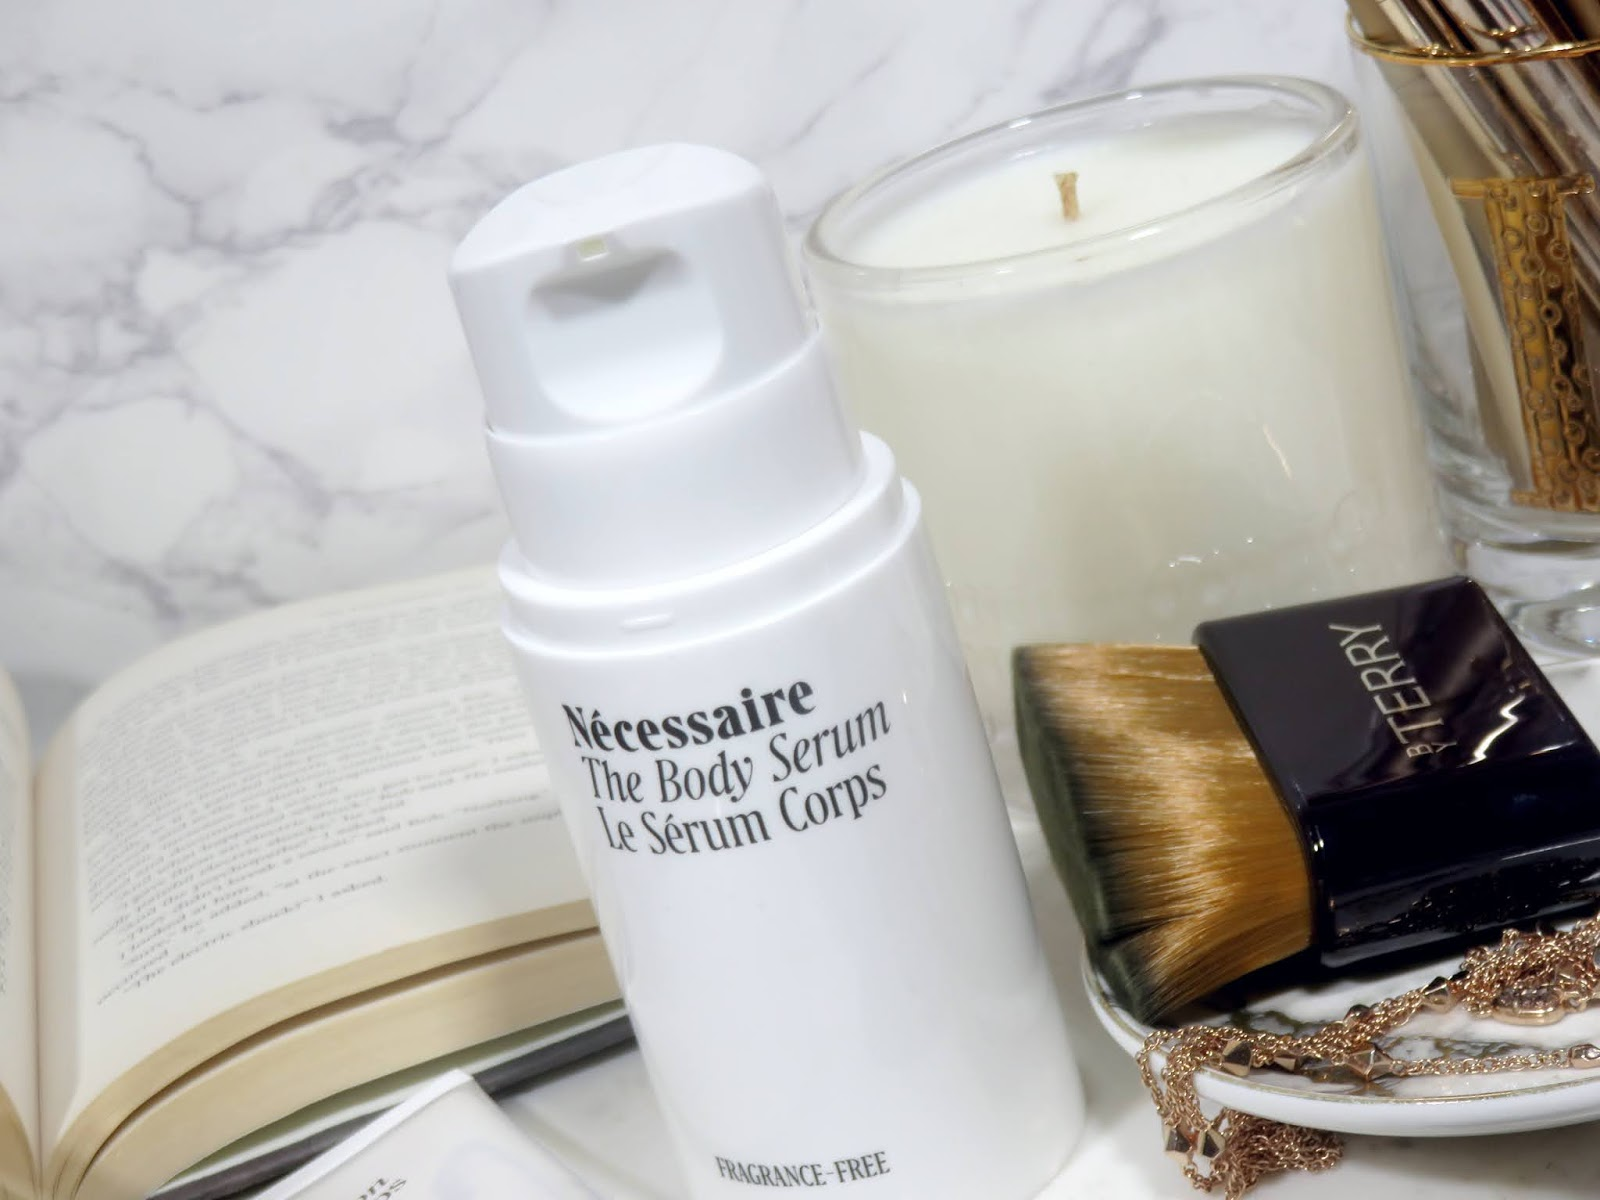 Necessaire The Body Serum Review